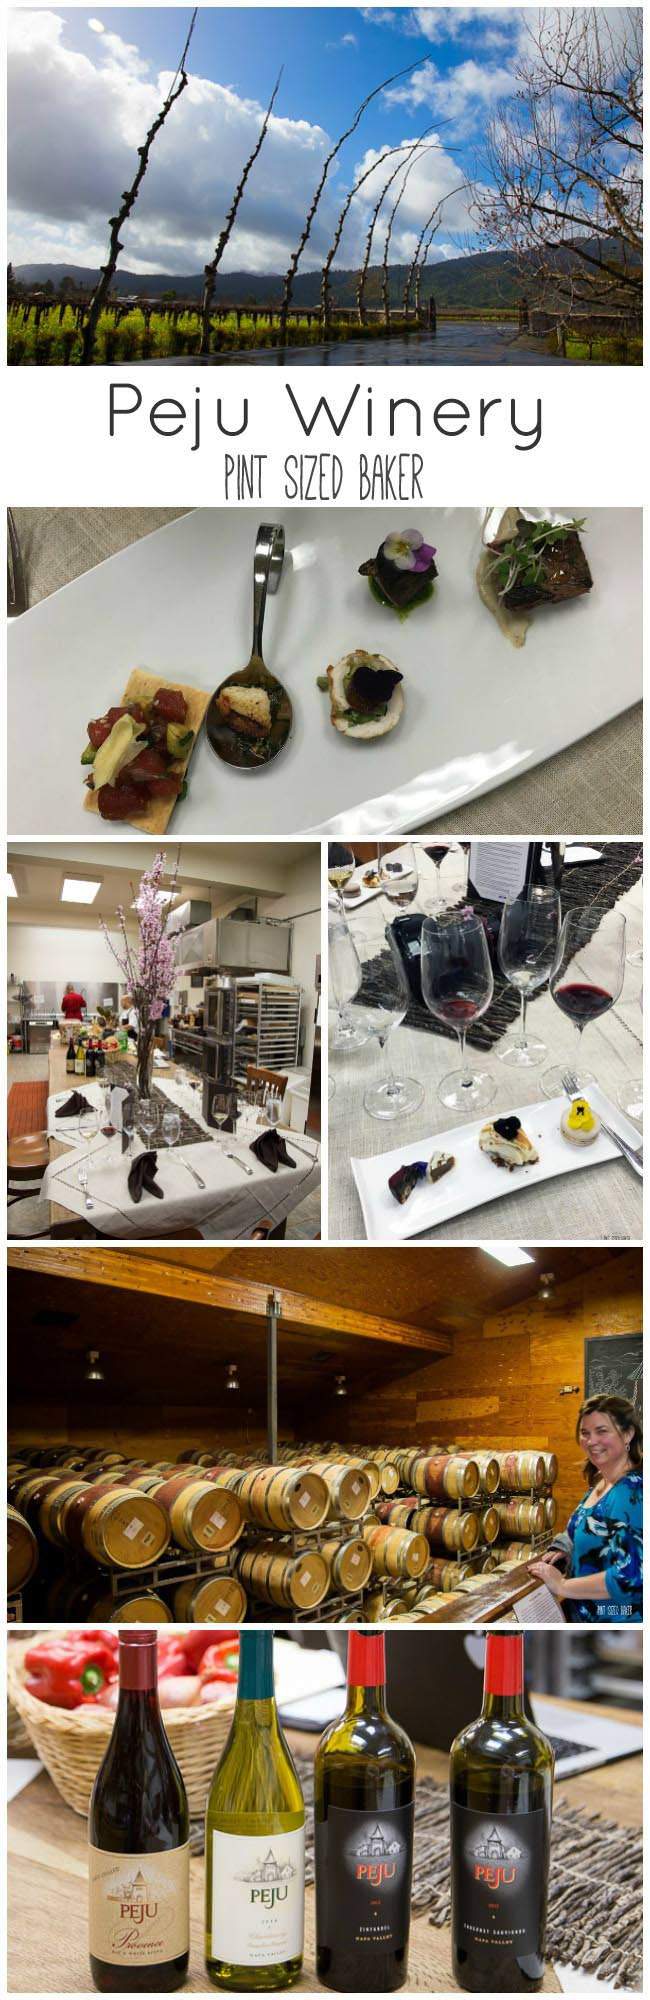 Enjoy an Interactive wine tasting experience in the Peju kitchens.